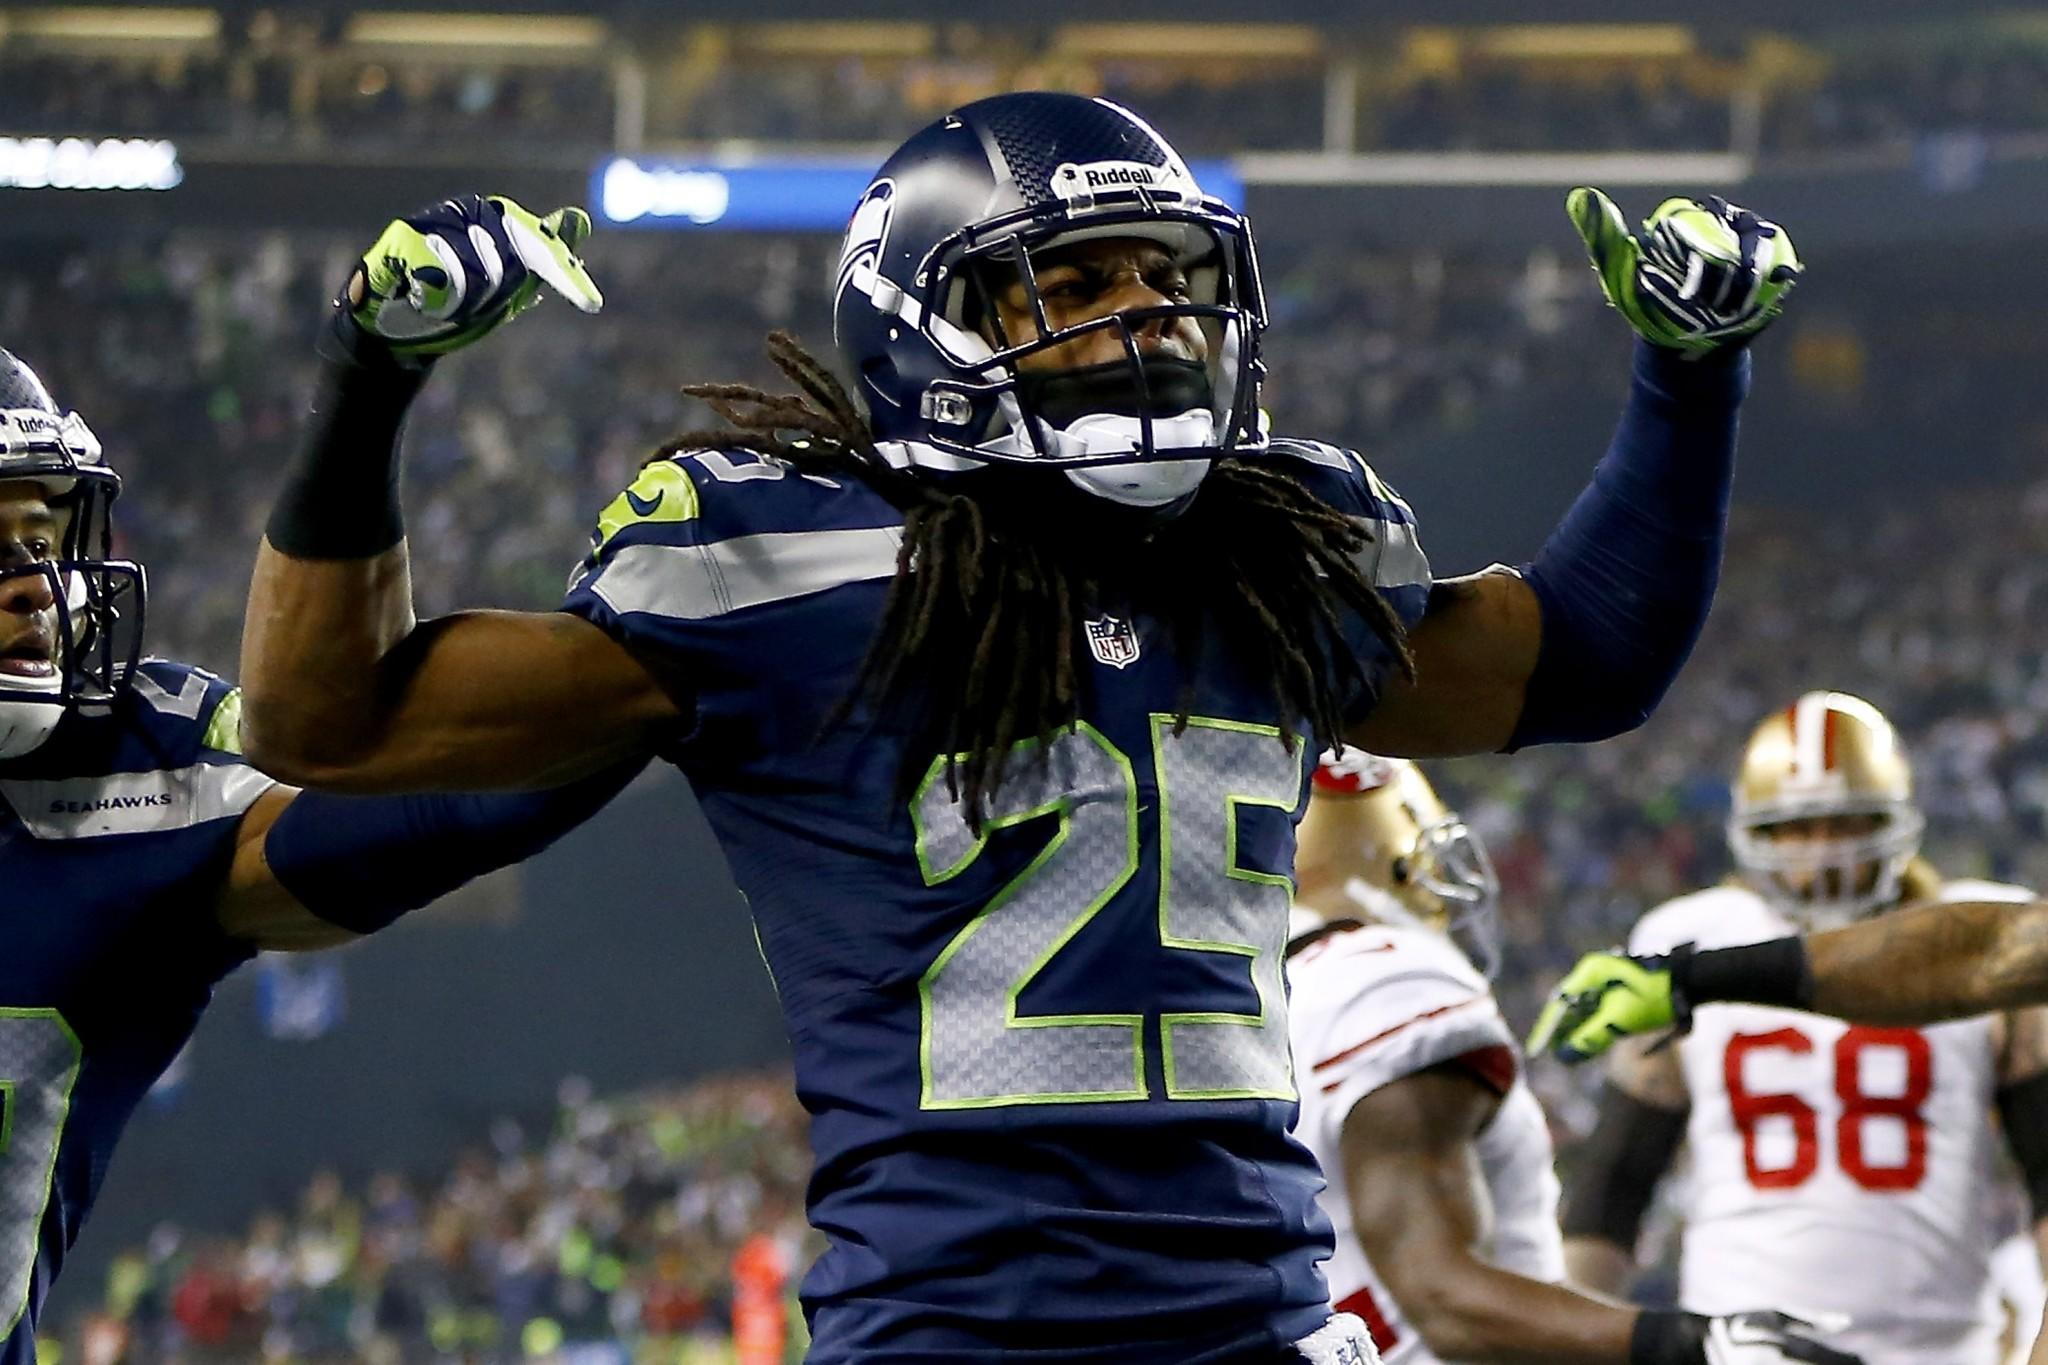 Cornerback Richard Sherman and the reinging champion Seattle Seahawks will open the 2014 season in a Thursday night game against the Green Bay Packers.